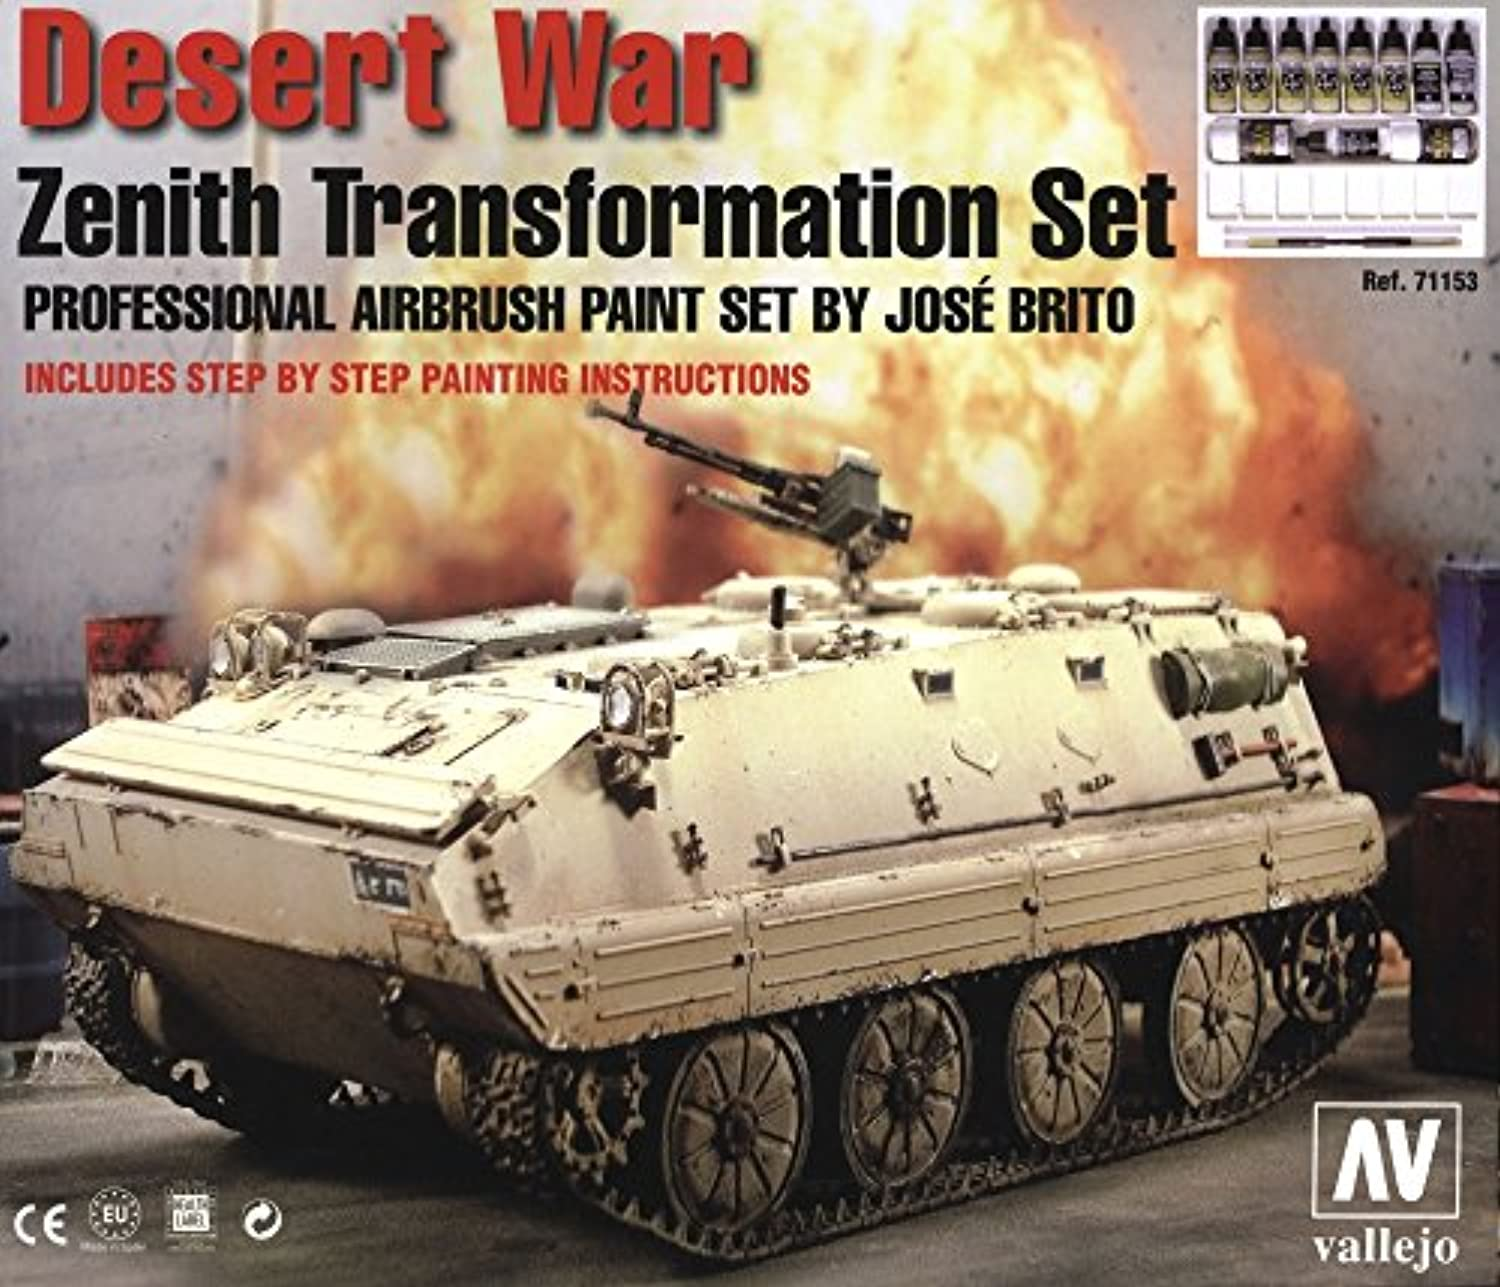 Vallejo Paint for Desert War Transformation Set